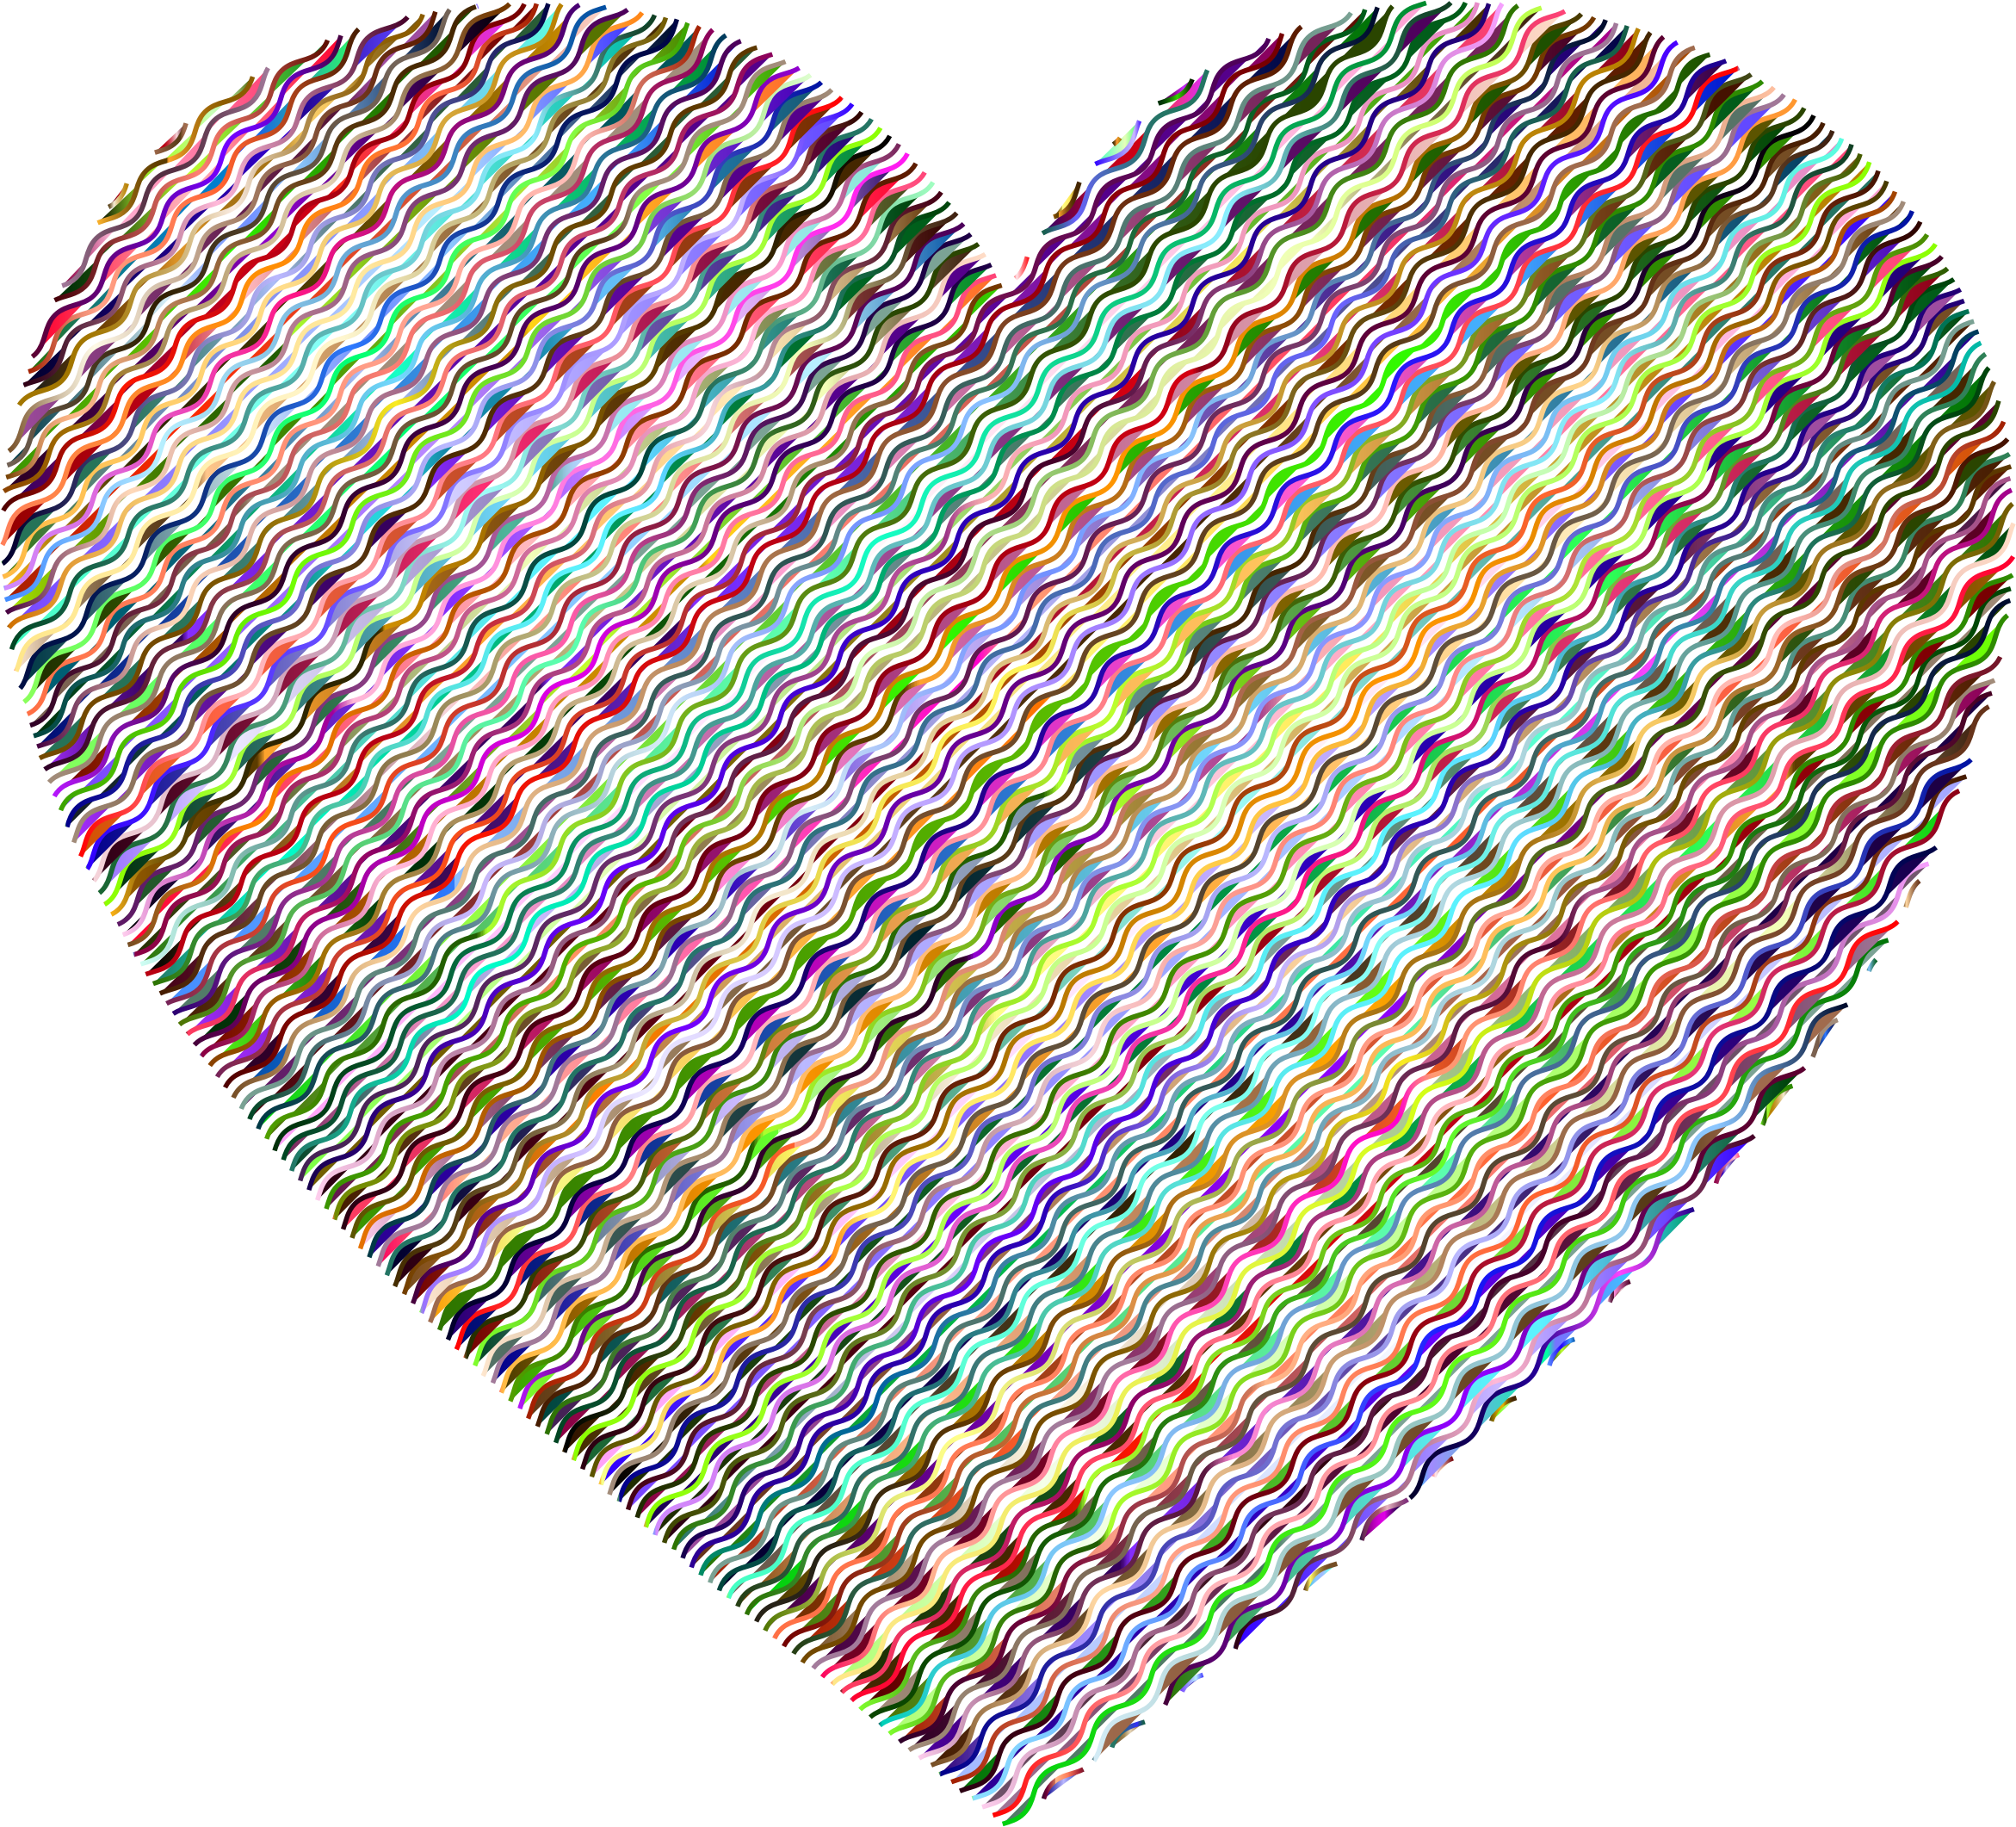 Prismatic Wavy Heart 2 No Background by GDJ